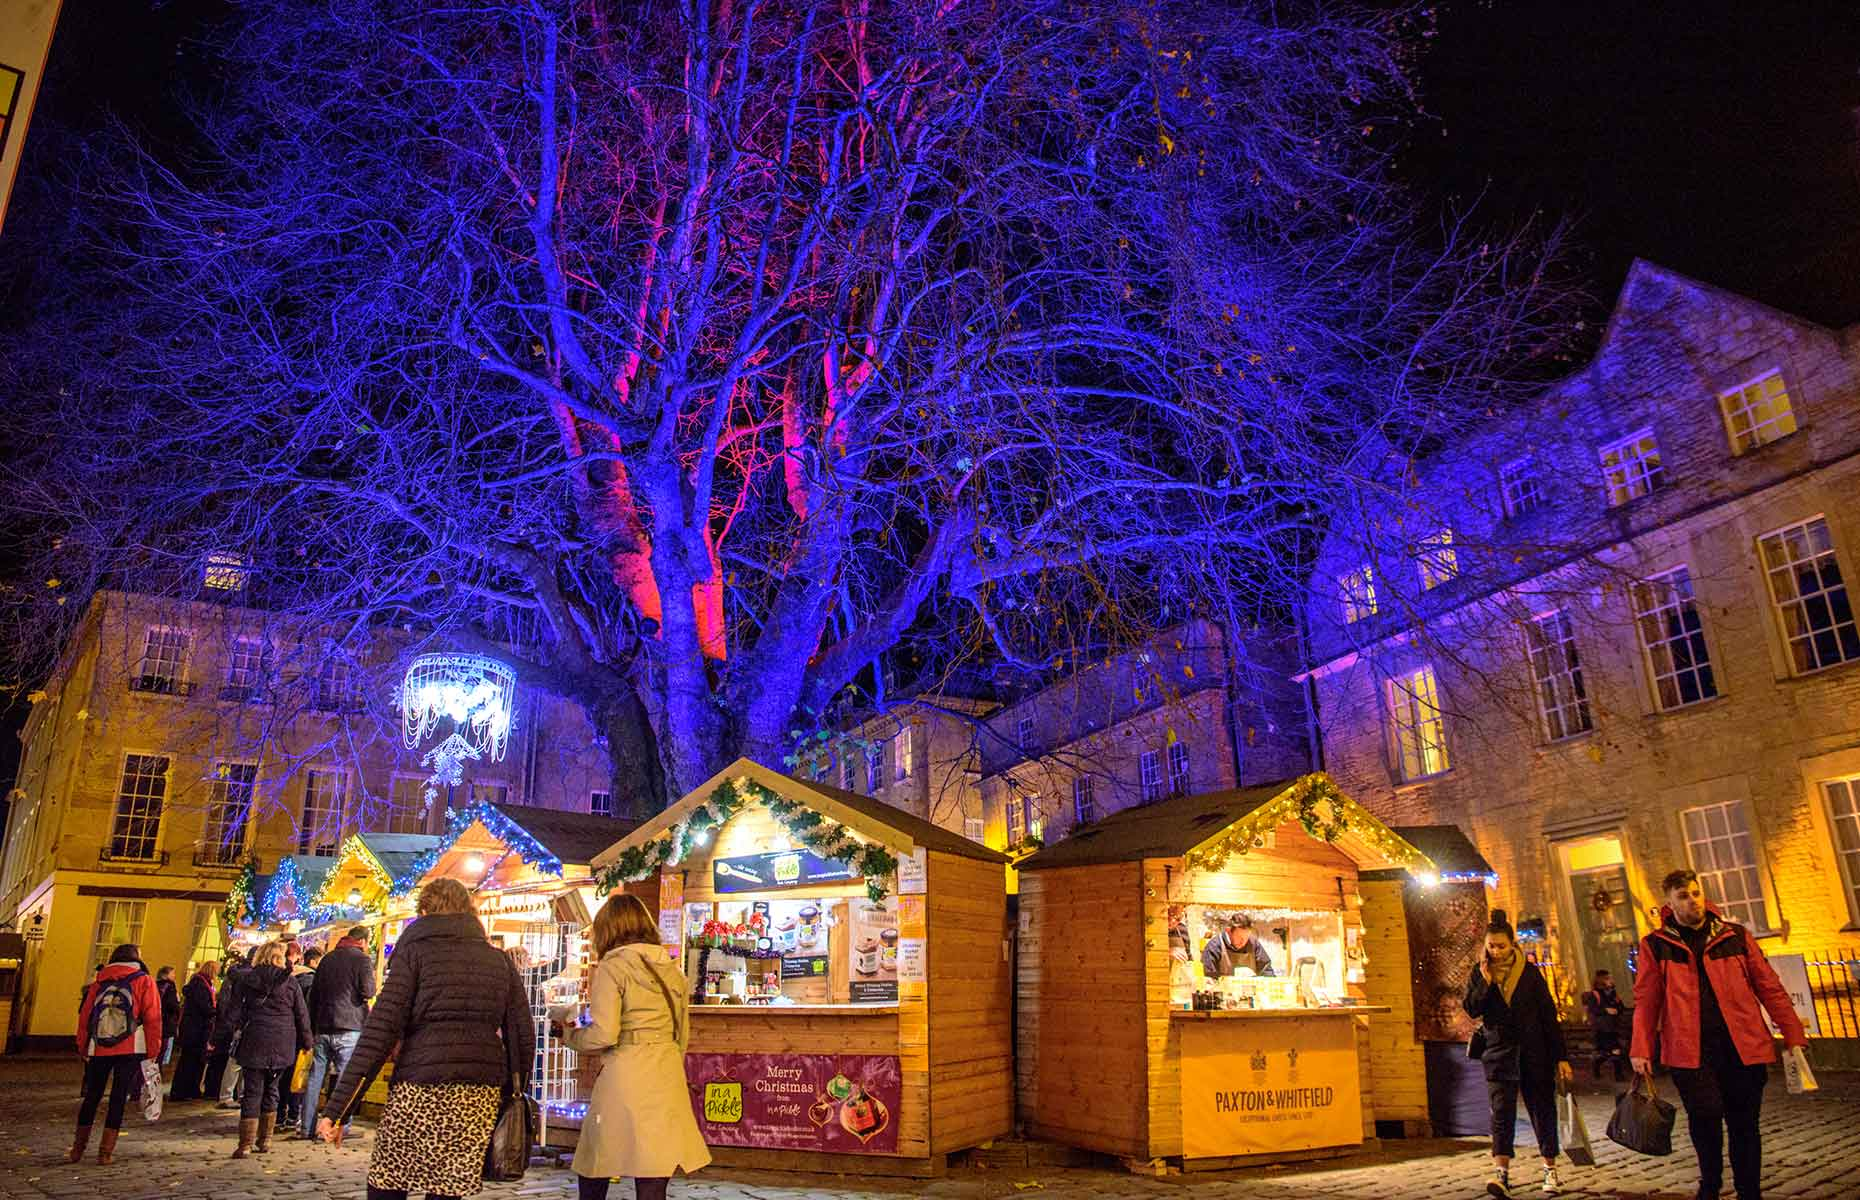 Bath Christmas Market is in the pretty setting of the Georgian city